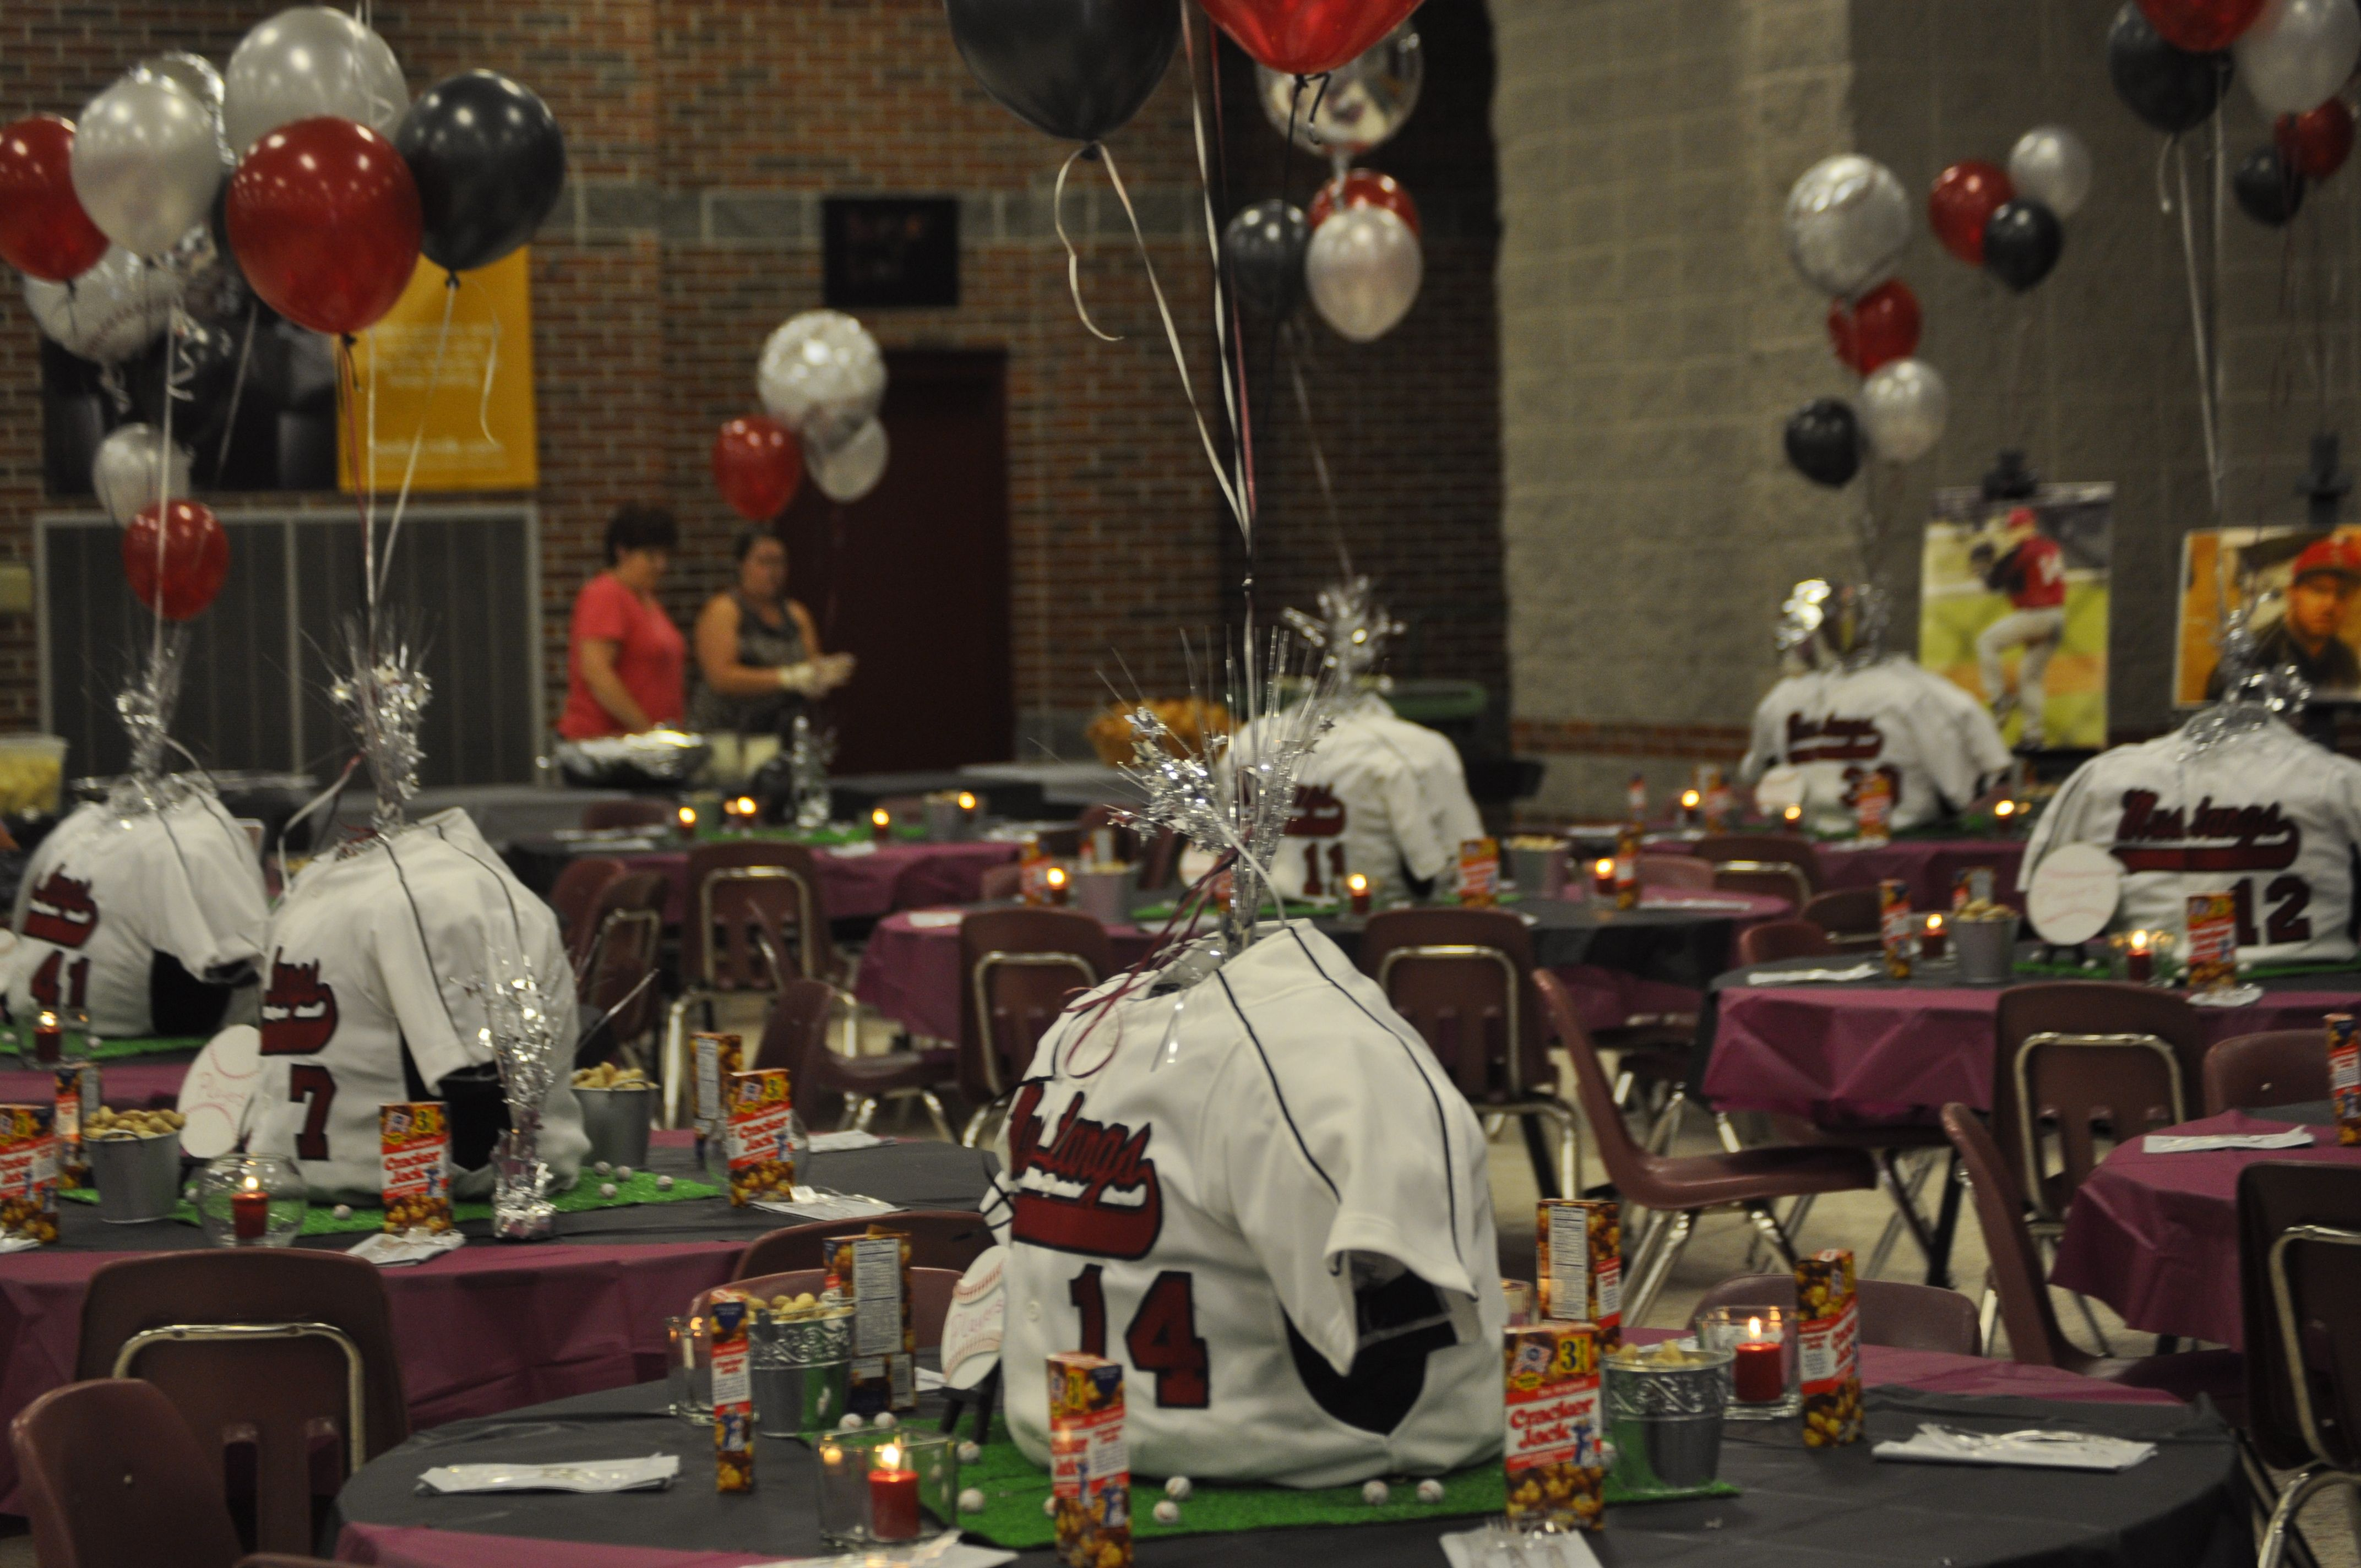 football banquet decorating ideas on pinterest just bcause